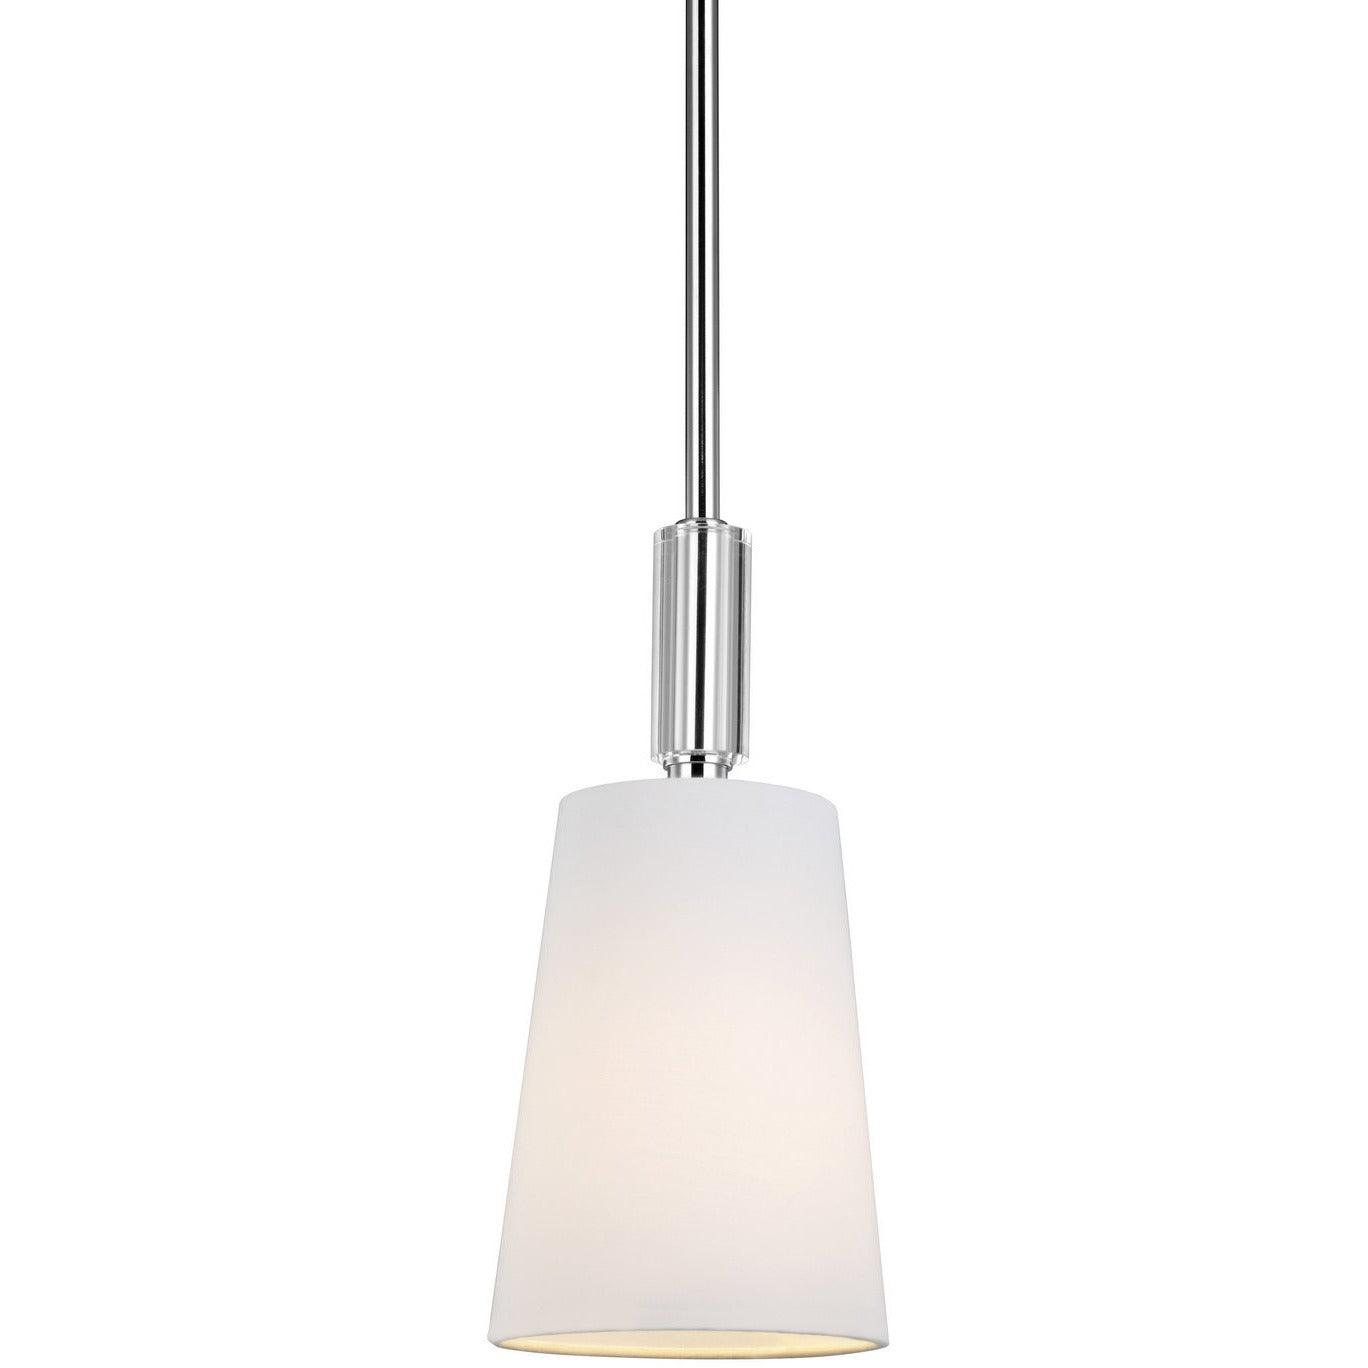 Feiss - P1303PN - Generation Lighting - Lismore - Polished Nickel